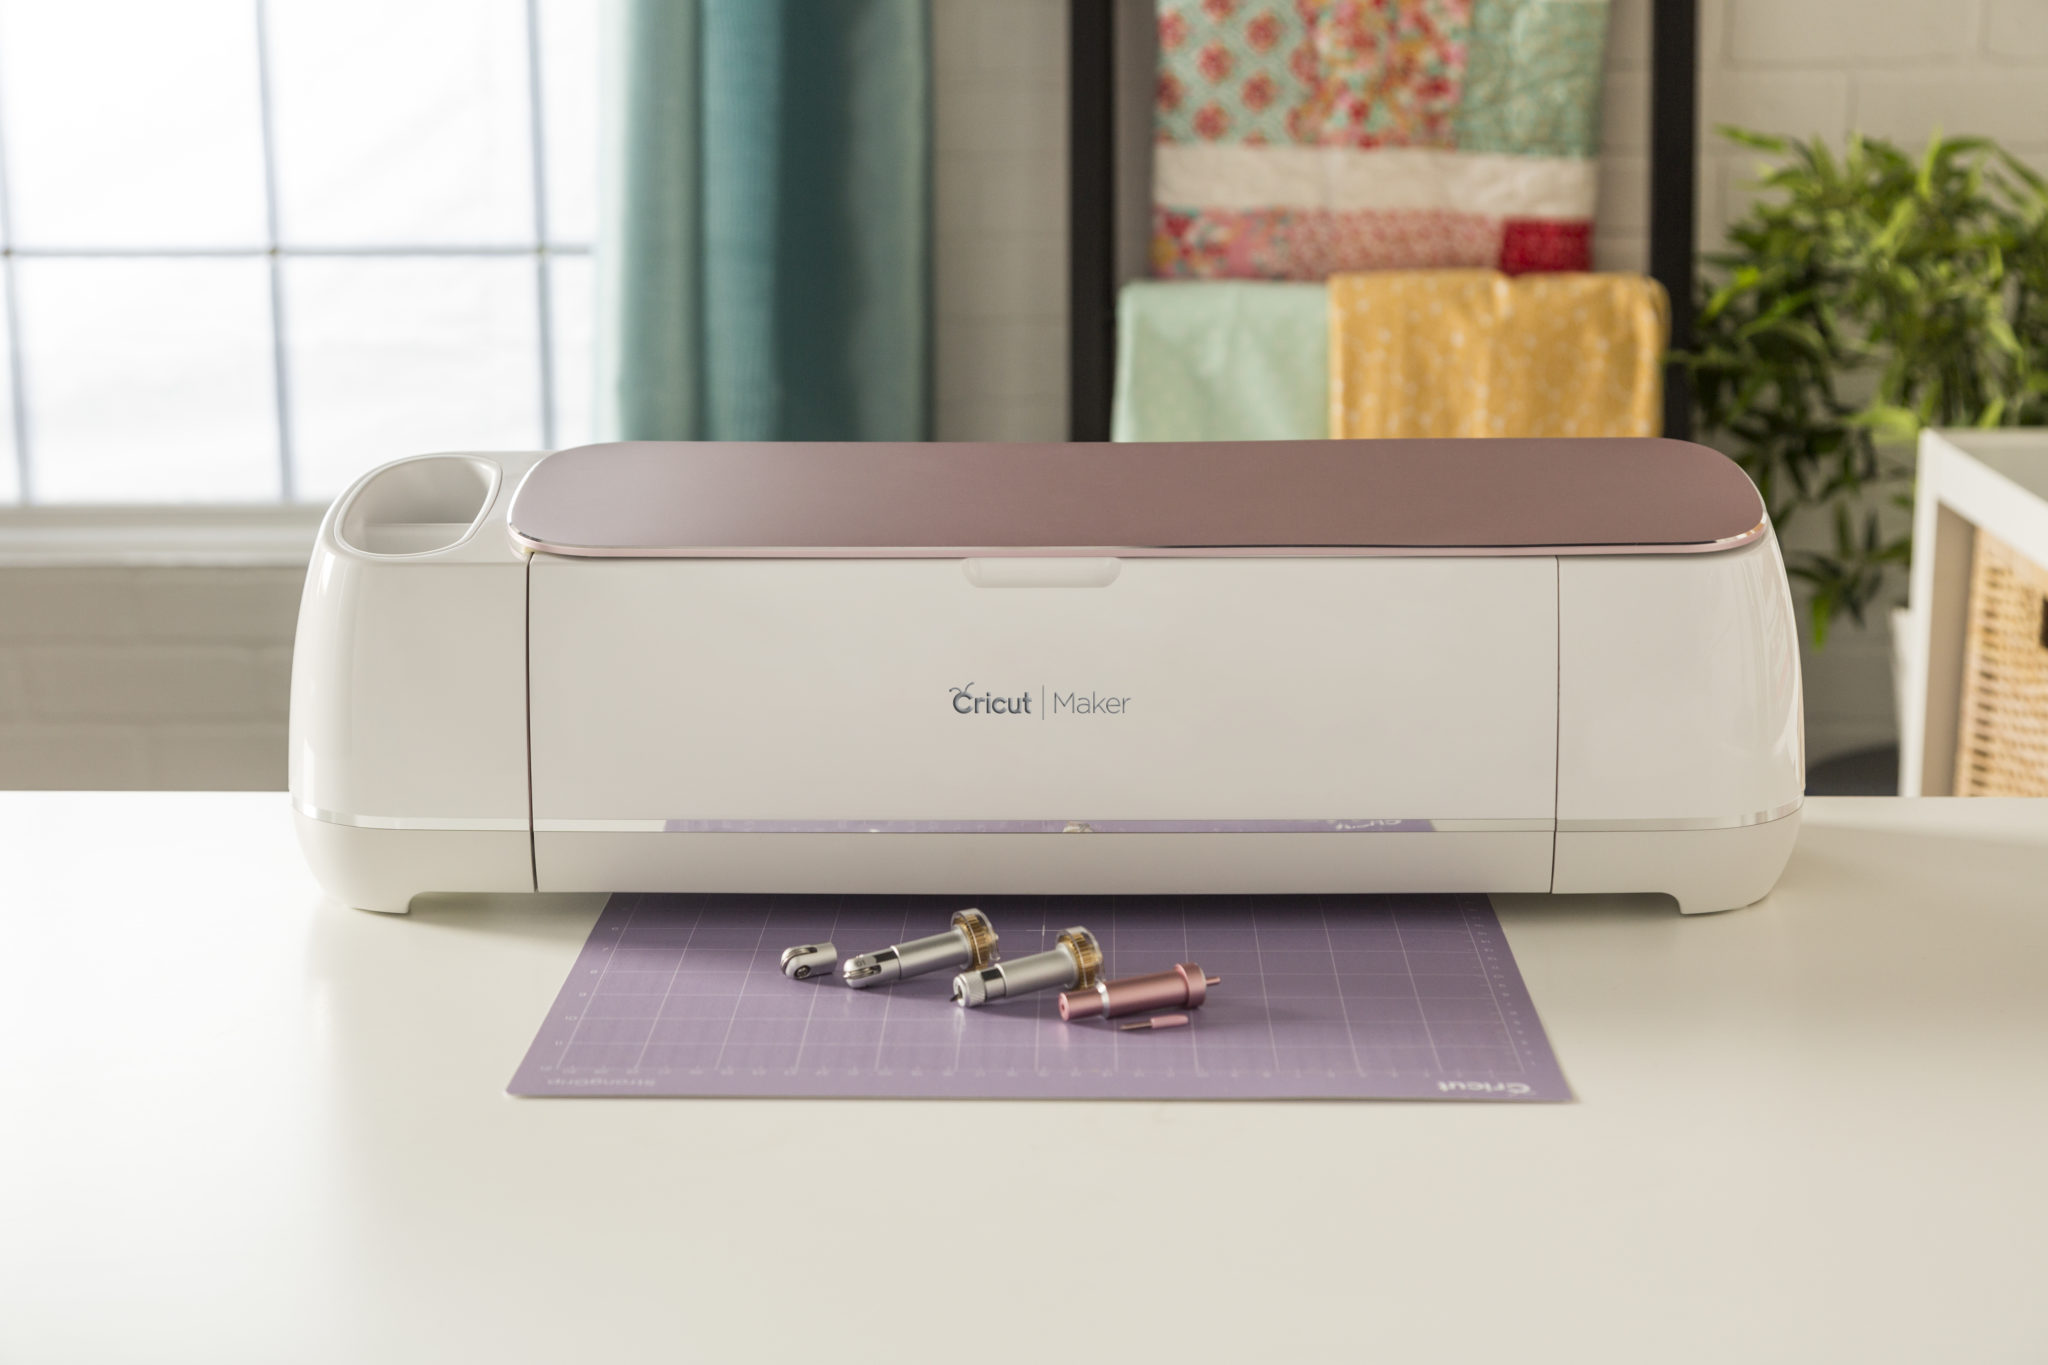 The new Rose Cricut Maker is a brand new color and includes new blade and cutting tools